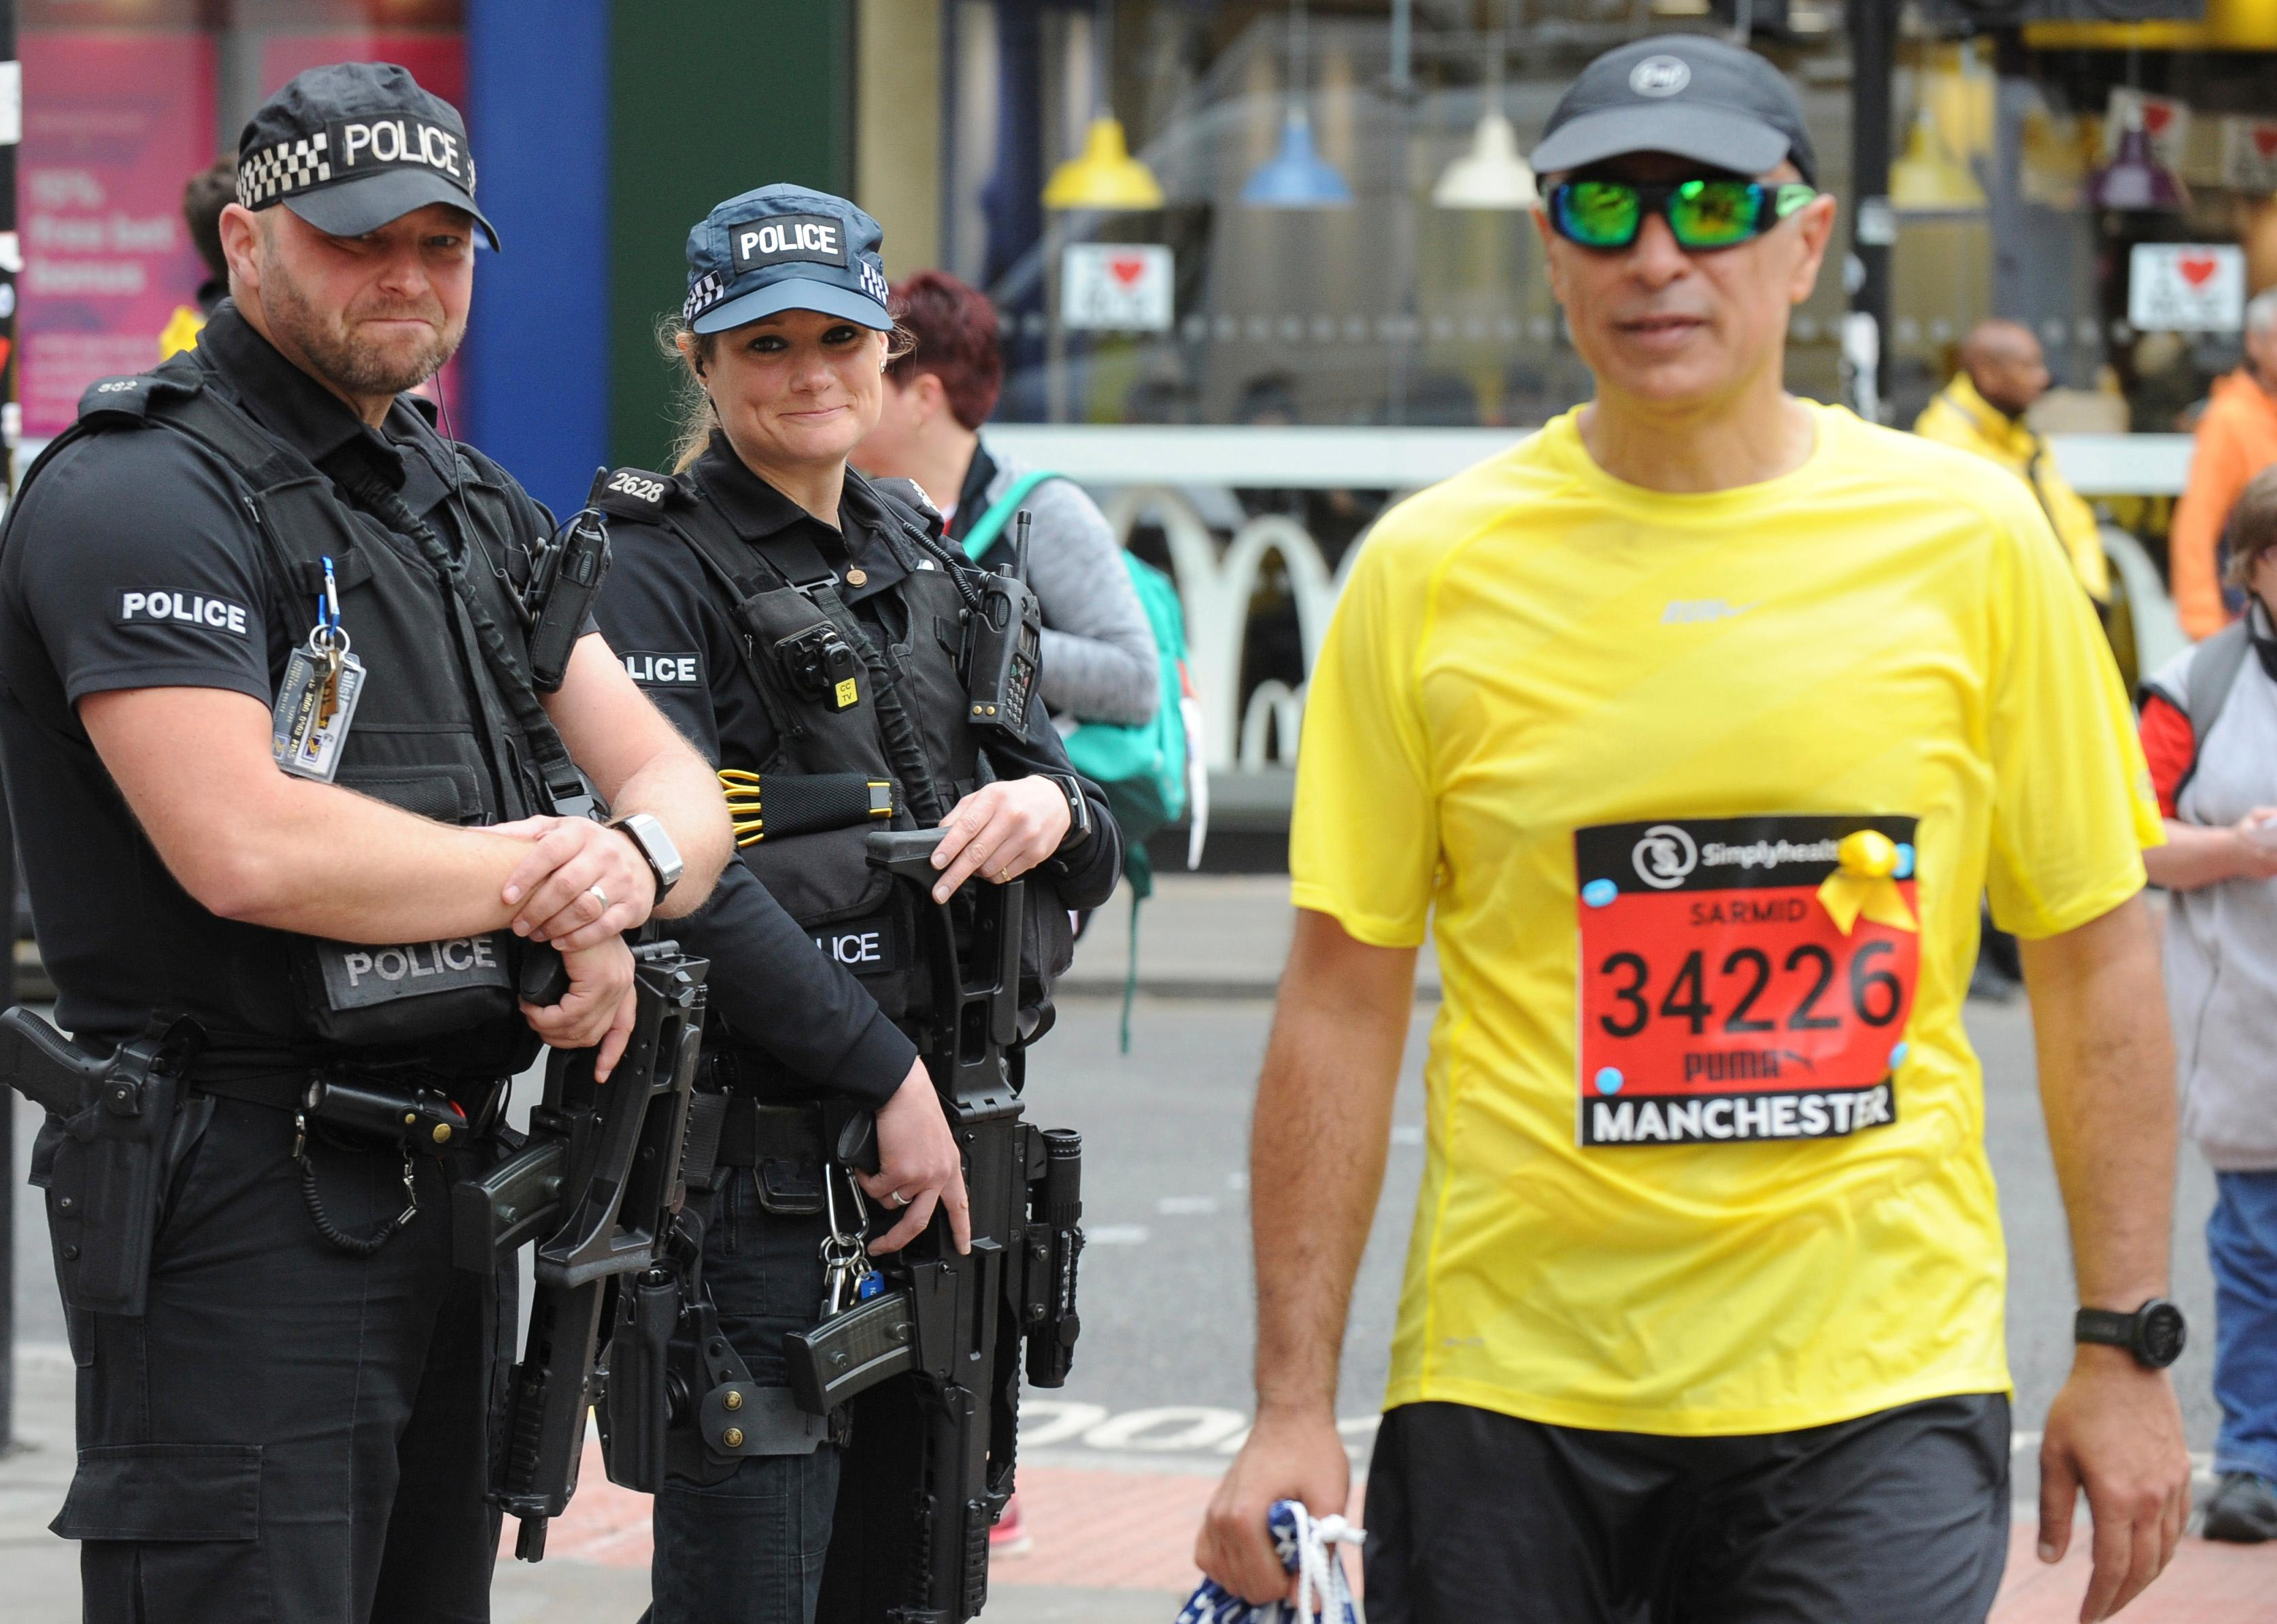 Armed response police guard the scene at the Great Manchester Run in central Manchester, England Sunday May 28 2017. More than 20 people were killed in an explosion following a Ariana Grande concert at the Manchester Arena late Monday evening. (AP Photo/Rui Vieira)